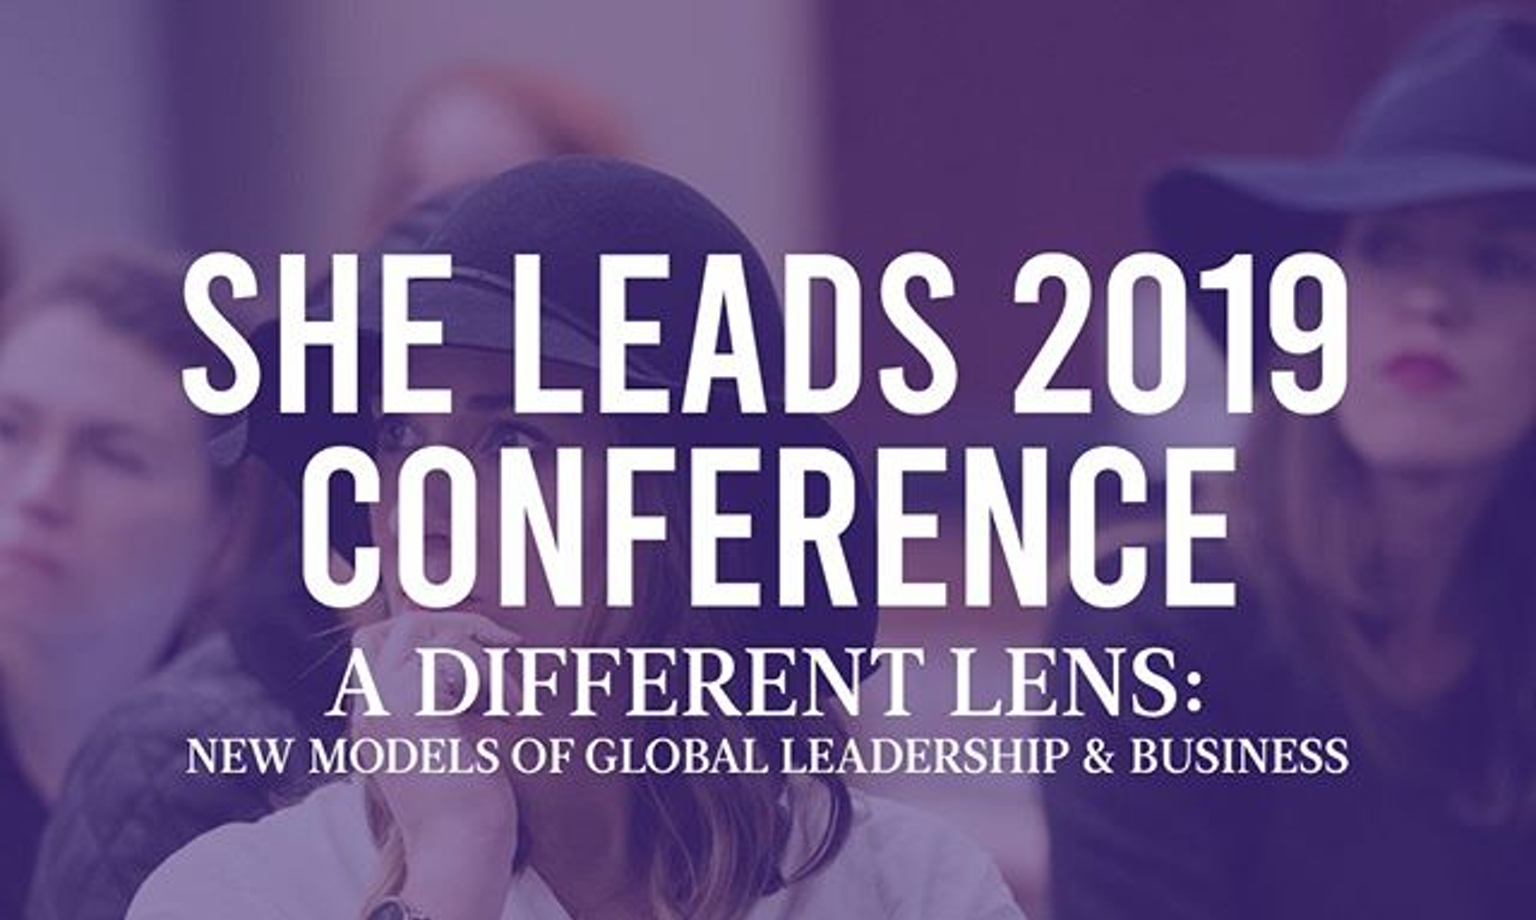 It's that time again! She Leads 2019 Conference NYC